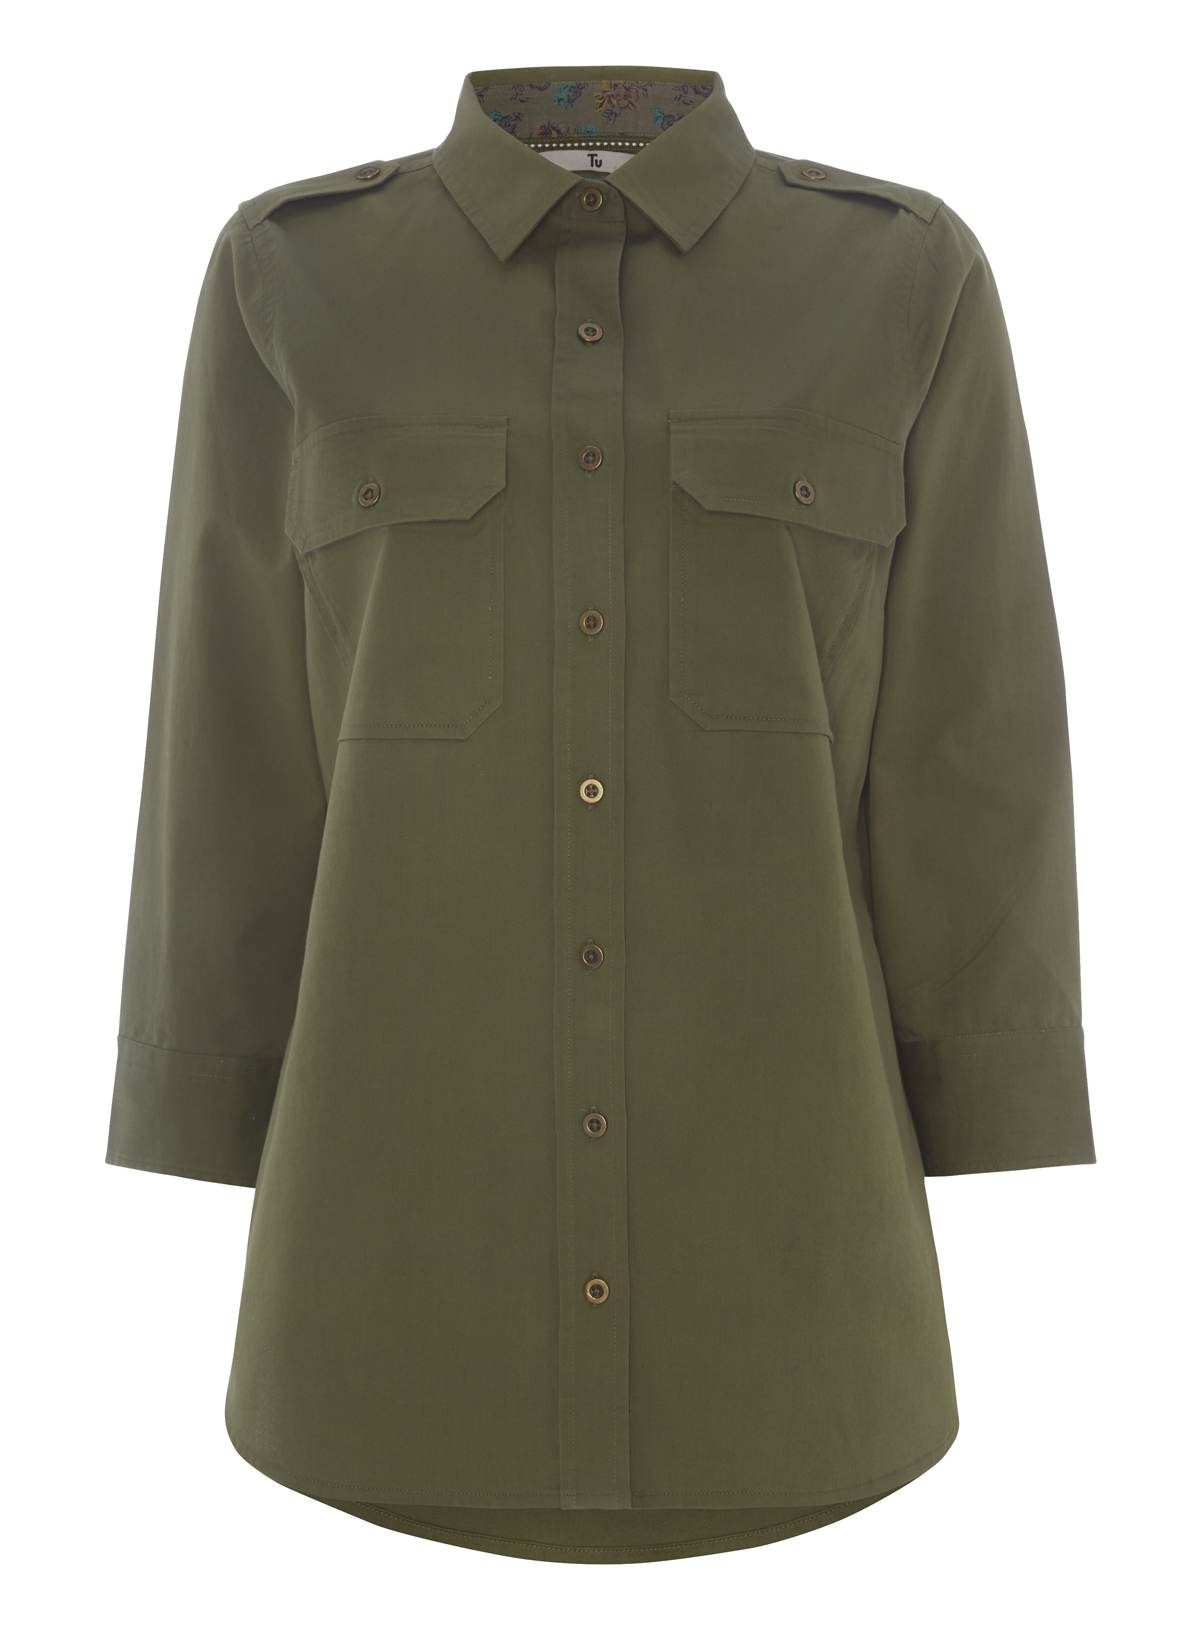 Womens Khaki Utility Shirt Jacket | Tu clothing